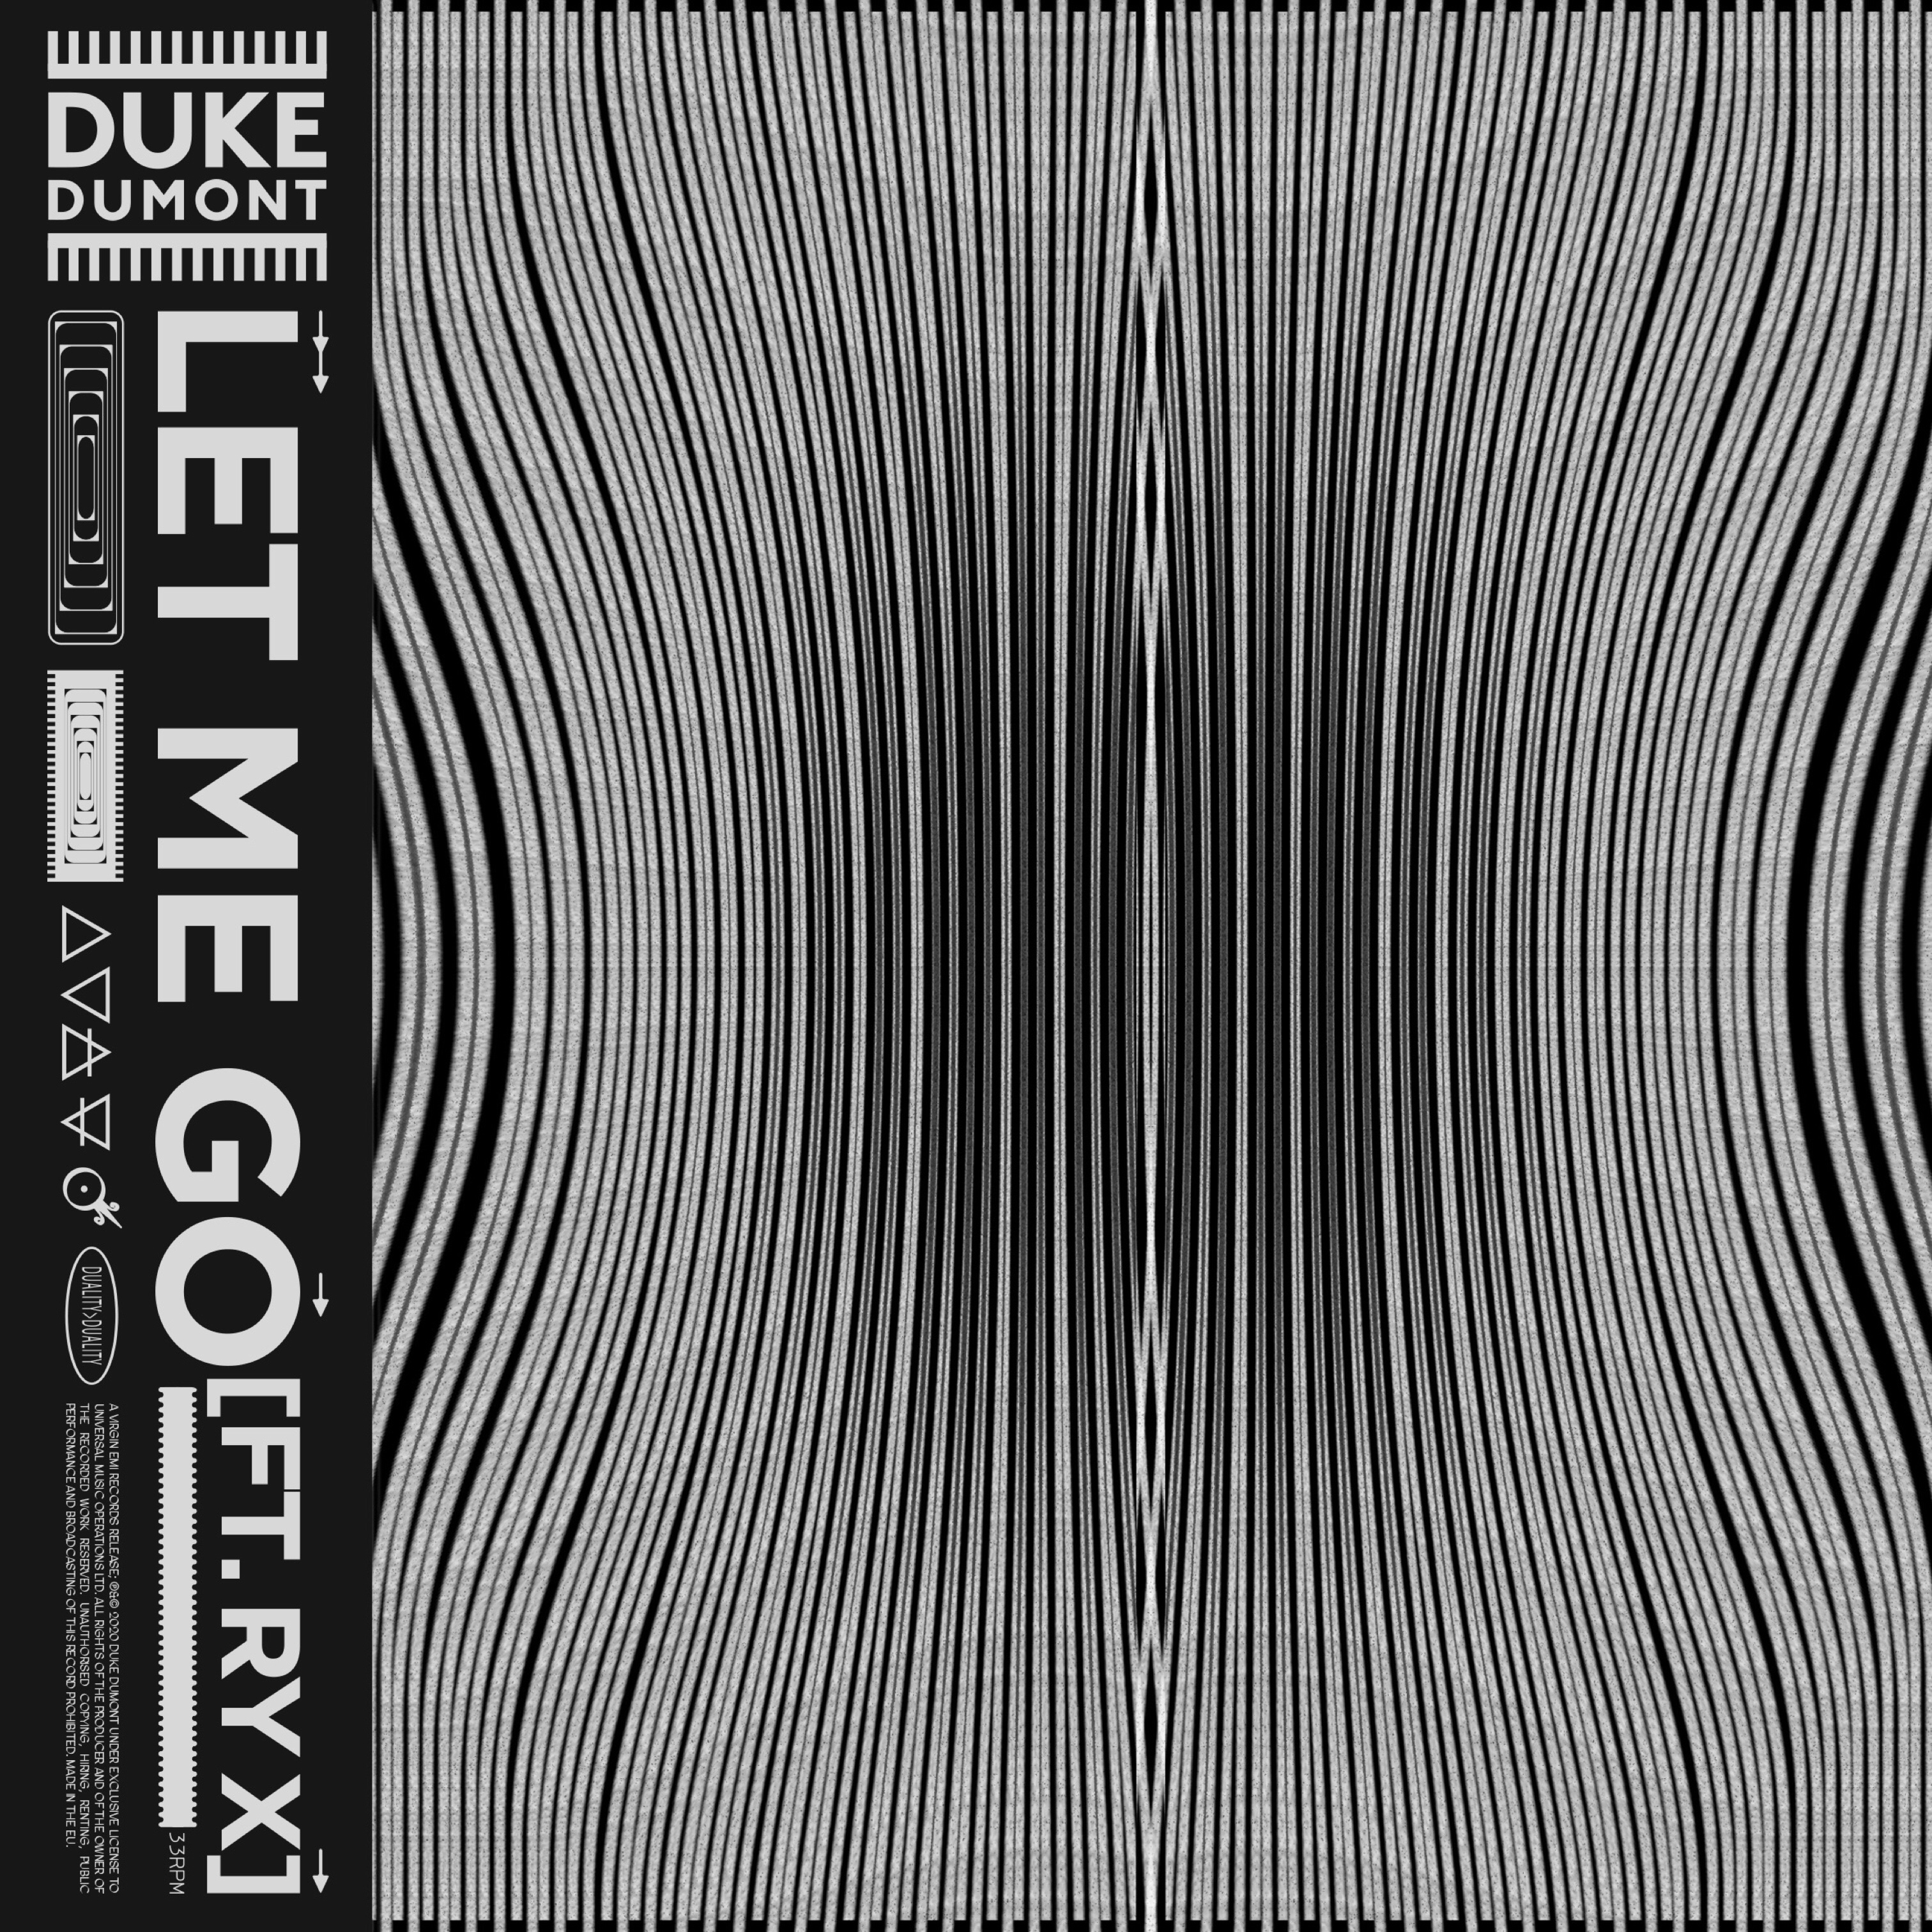 Duke Dumont, Let Me Go, Vaughn Lowery, 360 Magazine,